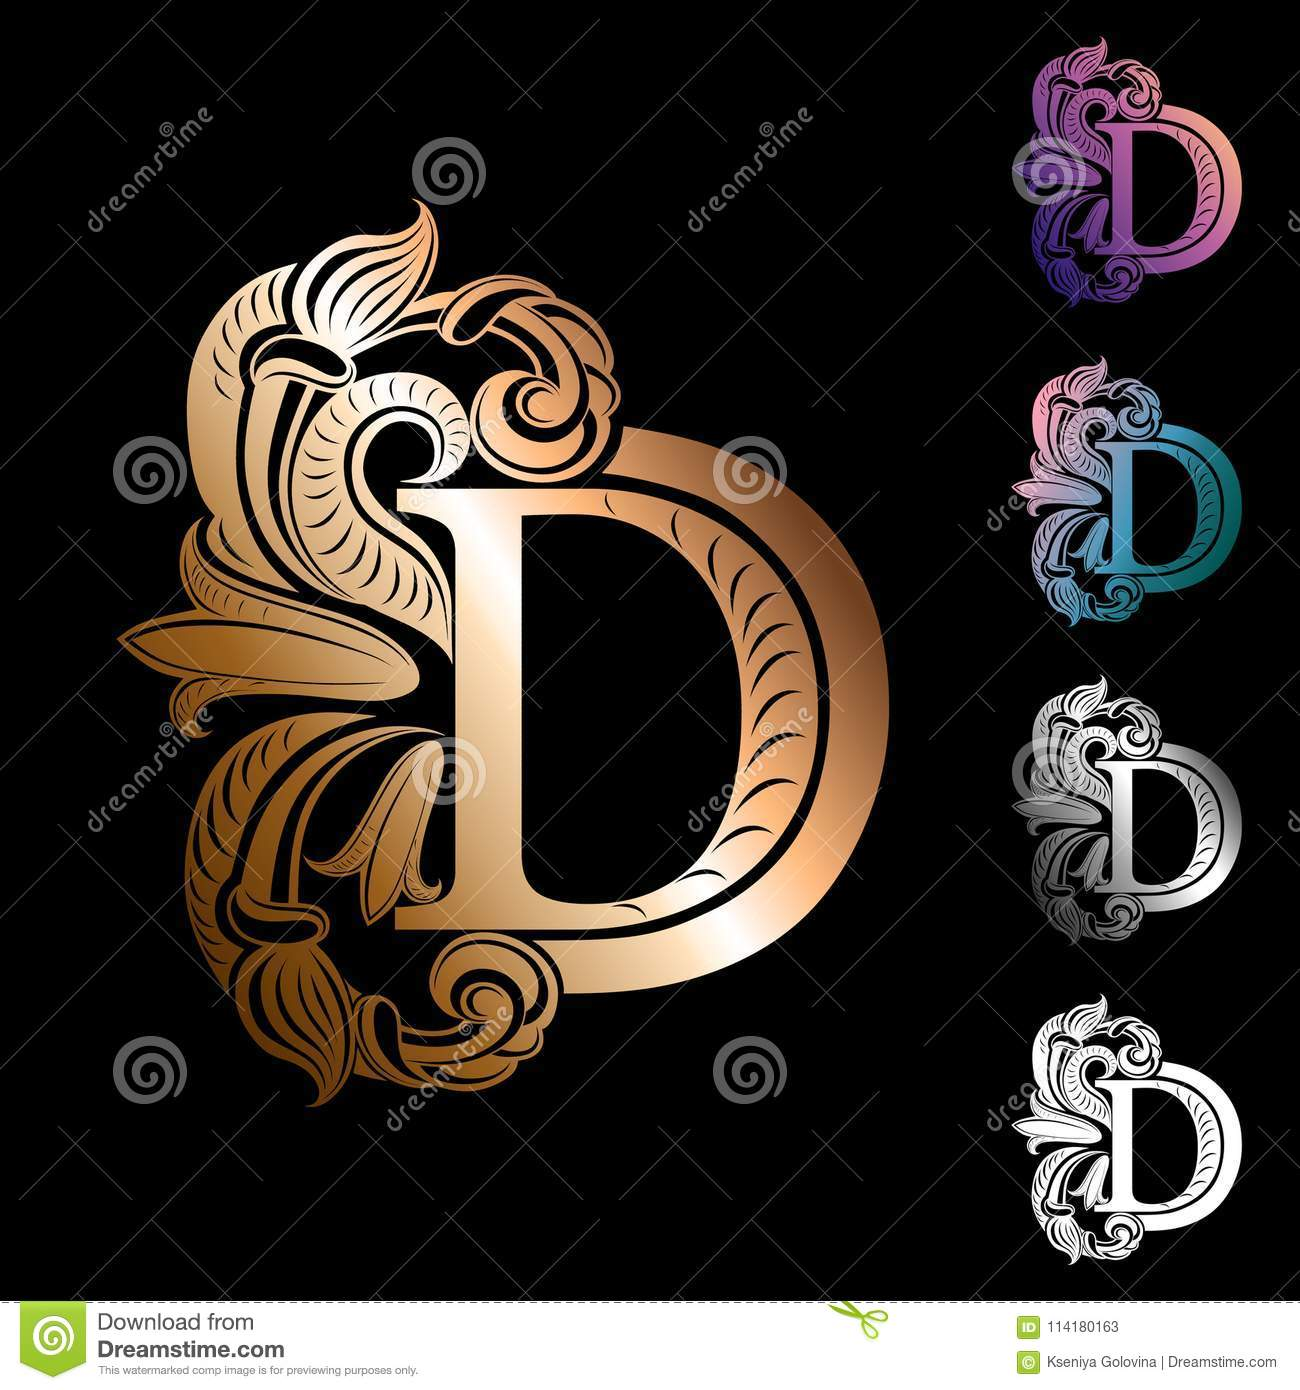 Letter D, Decorated With Vintage, Elegant Flowers And